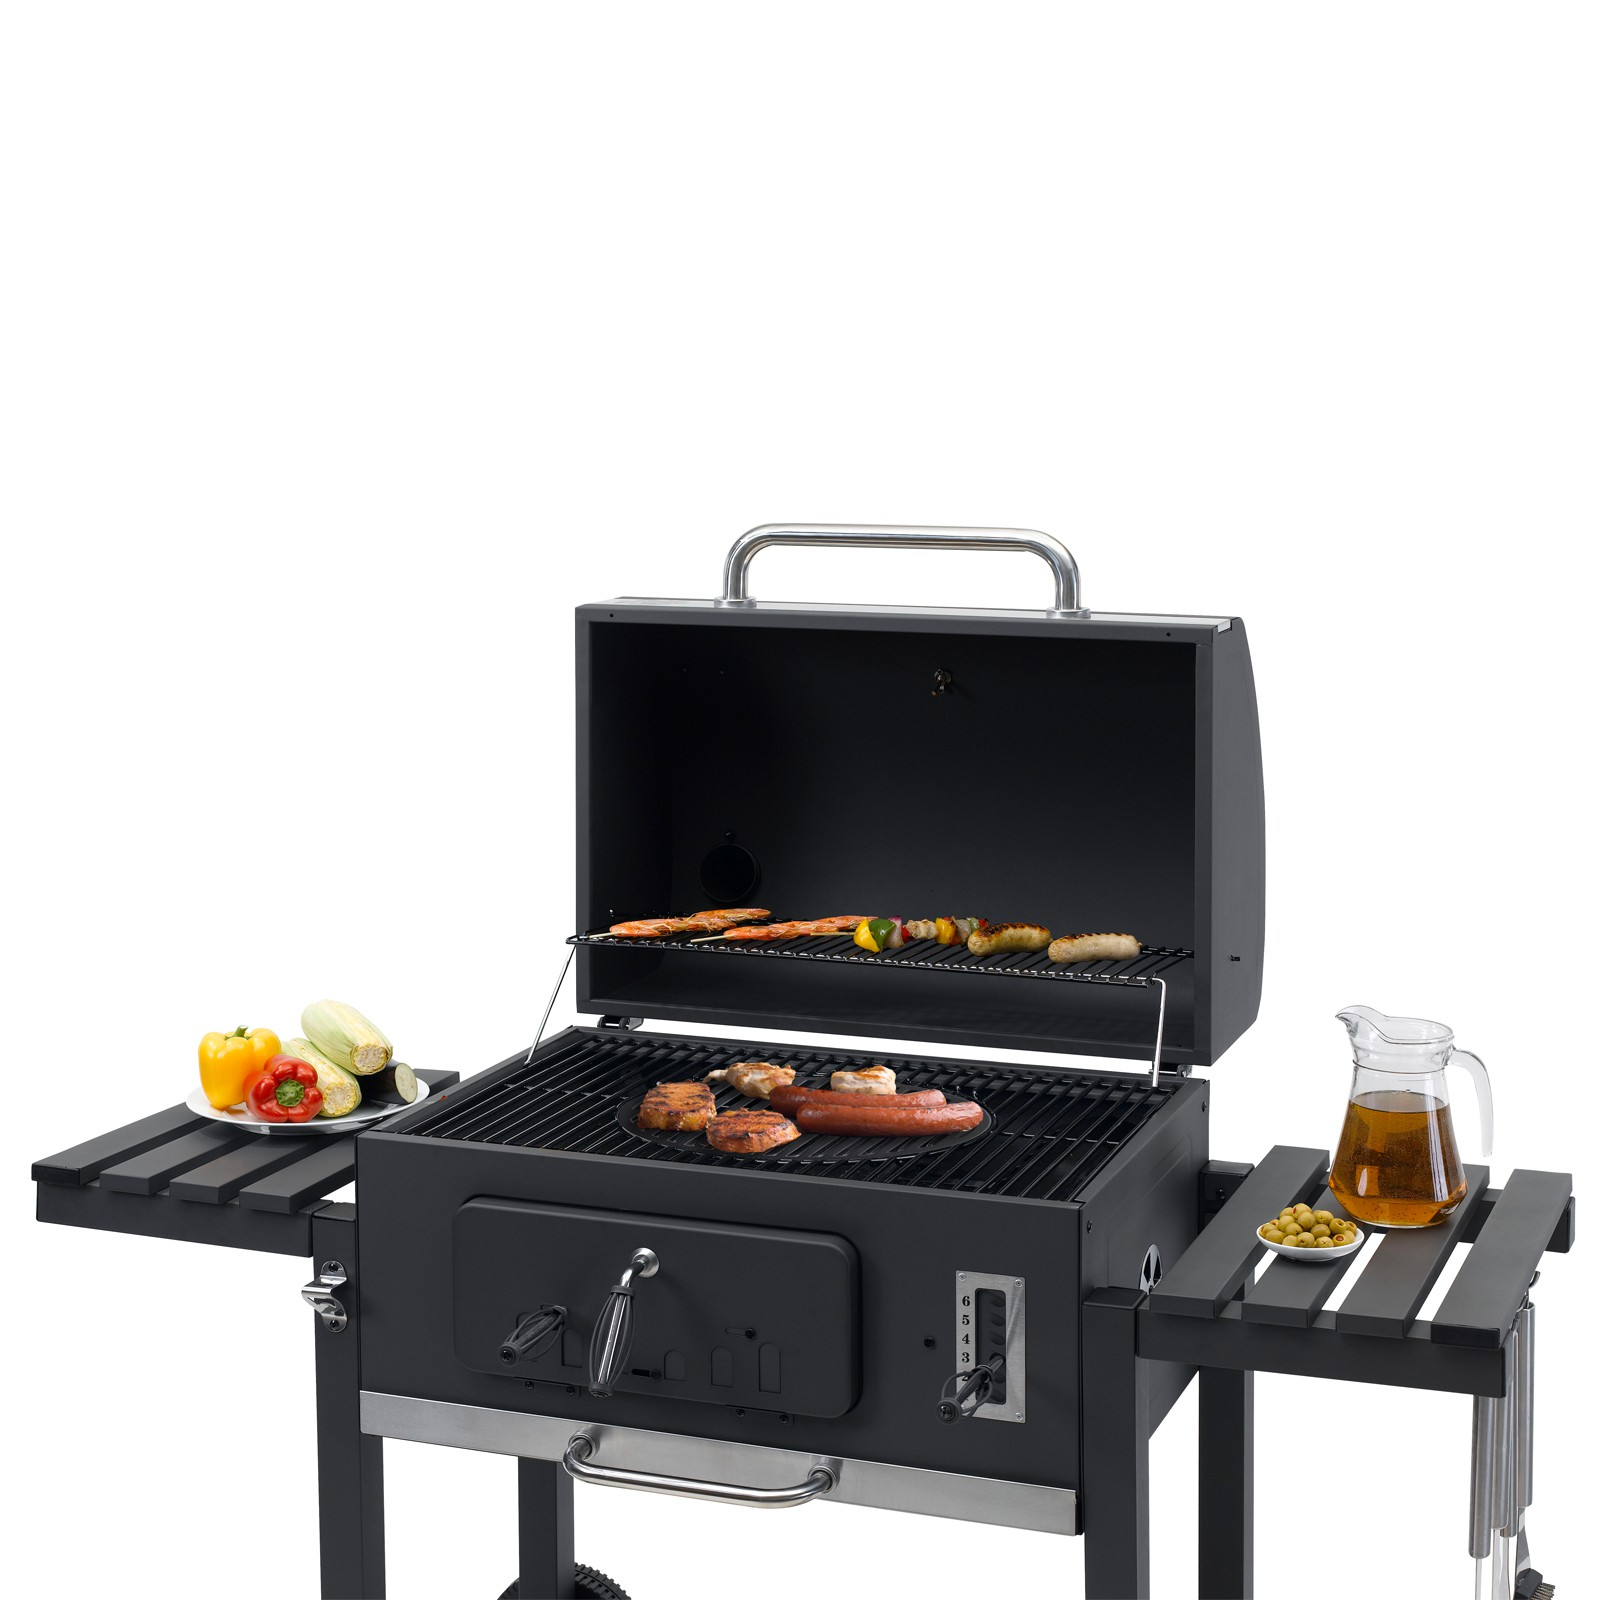 tepro holzkohlengrill grillwagen bbq grill kohlegrill toronto xxl 4011964010611 ebay. Black Bedroom Furniture Sets. Home Design Ideas